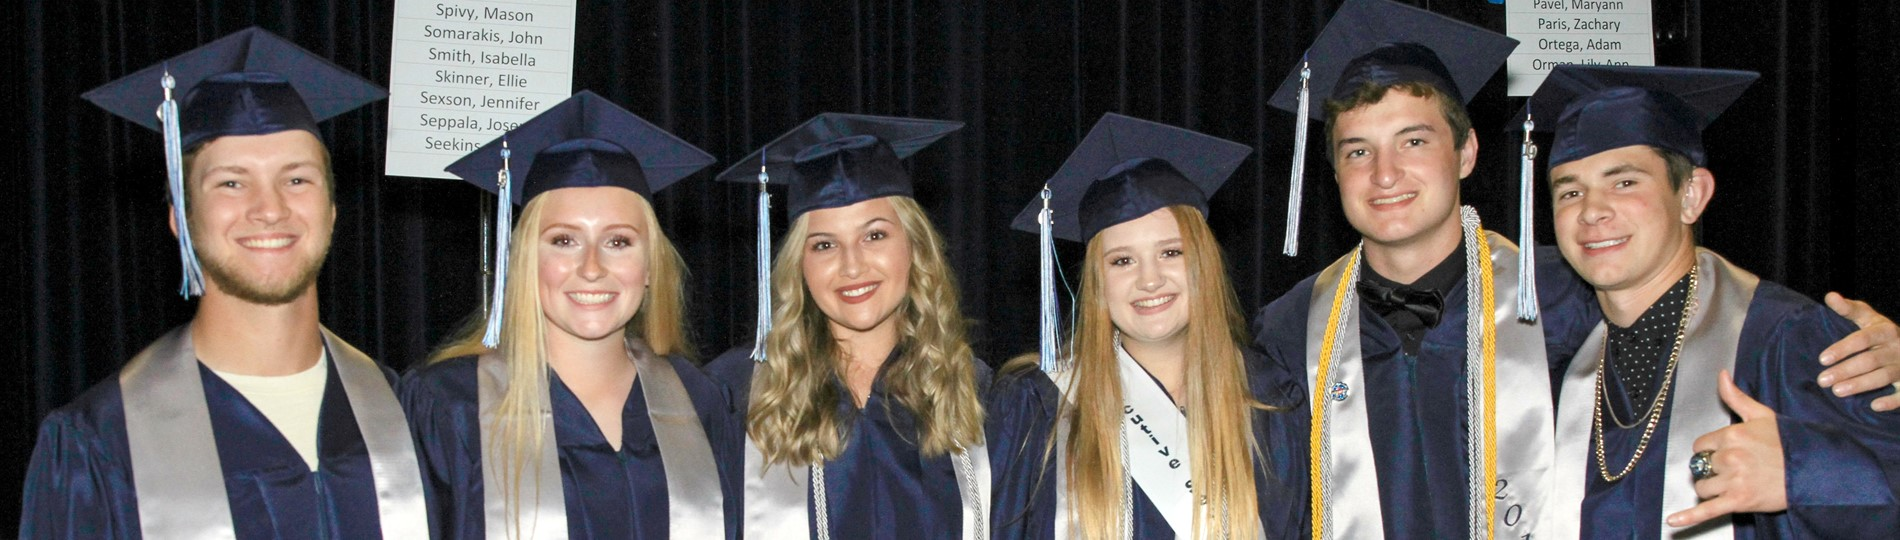 HHS students wearing mortarboards and graduation gowns smile for the camera.